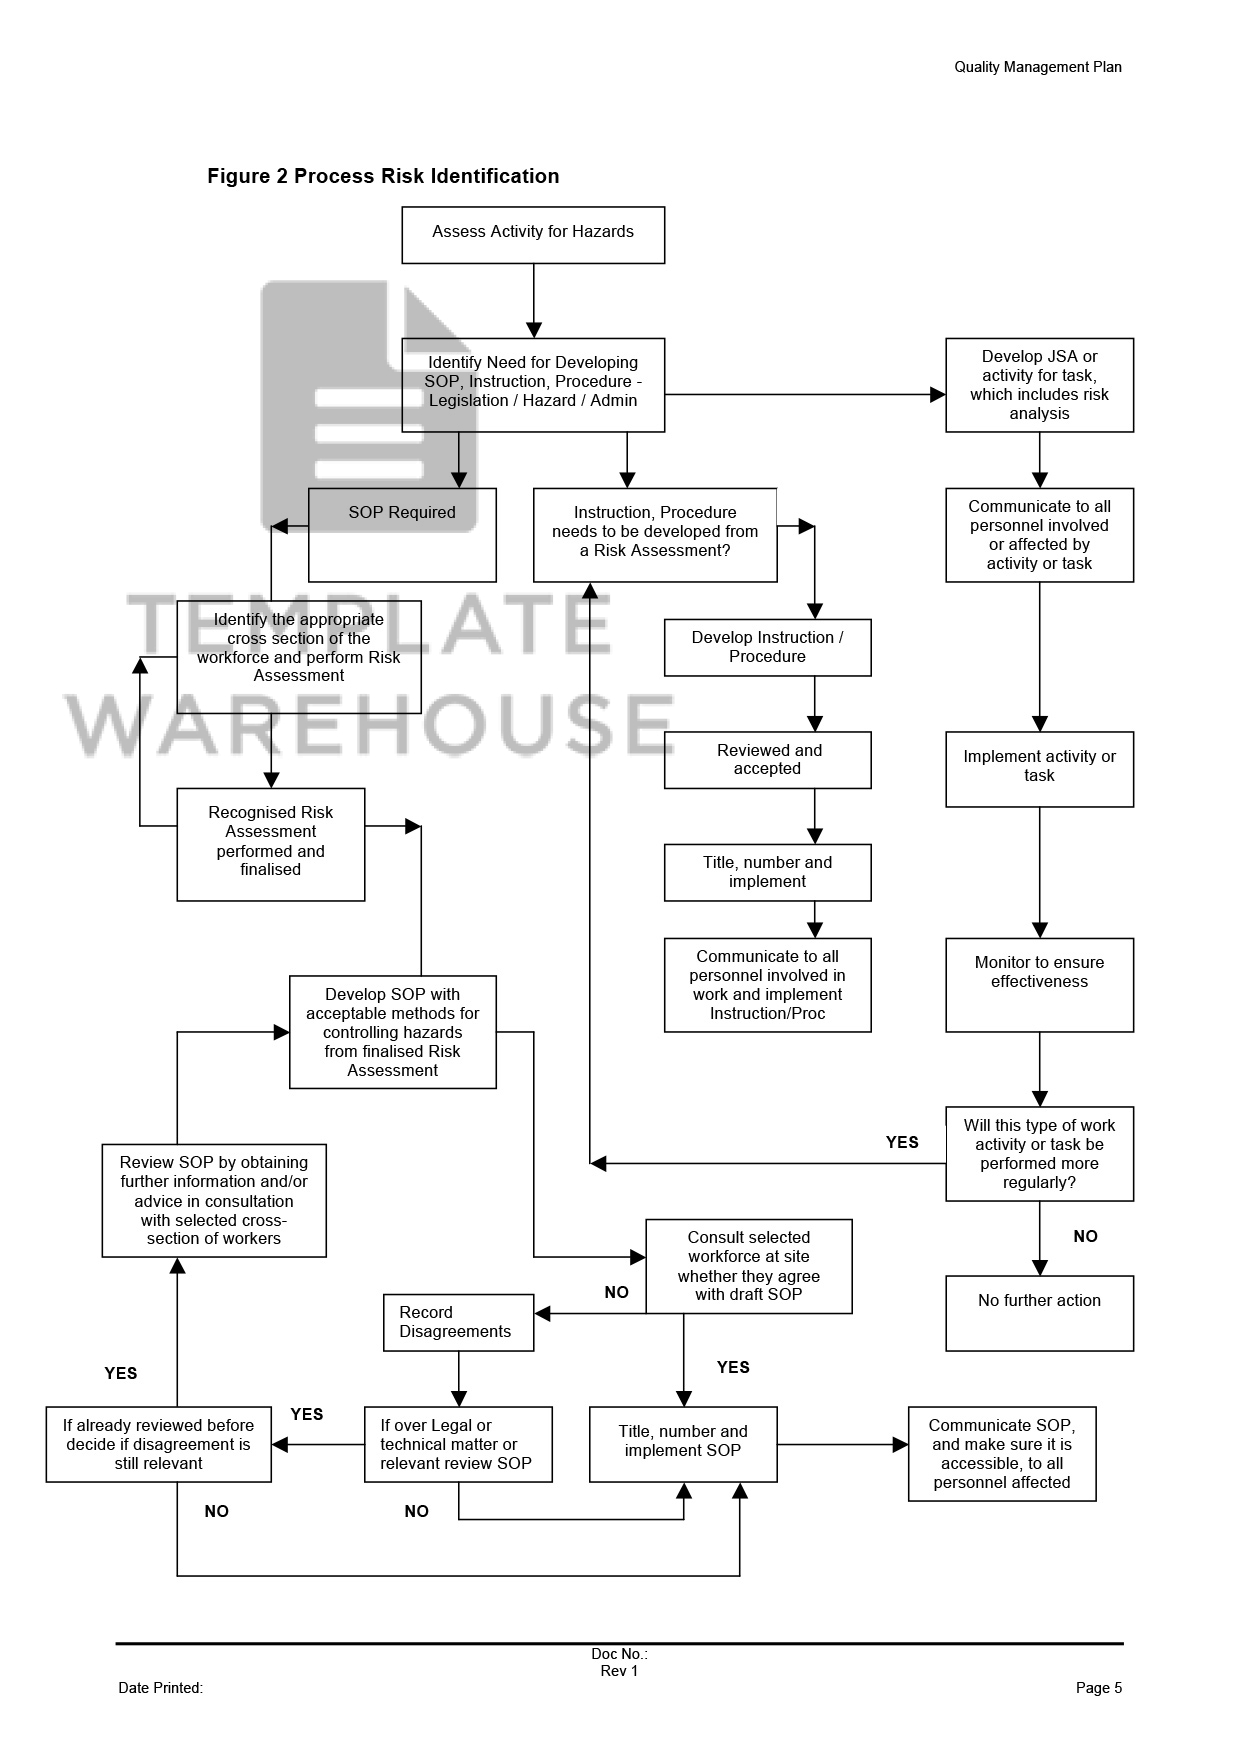 Quality Management Plan – Template Warehouse on